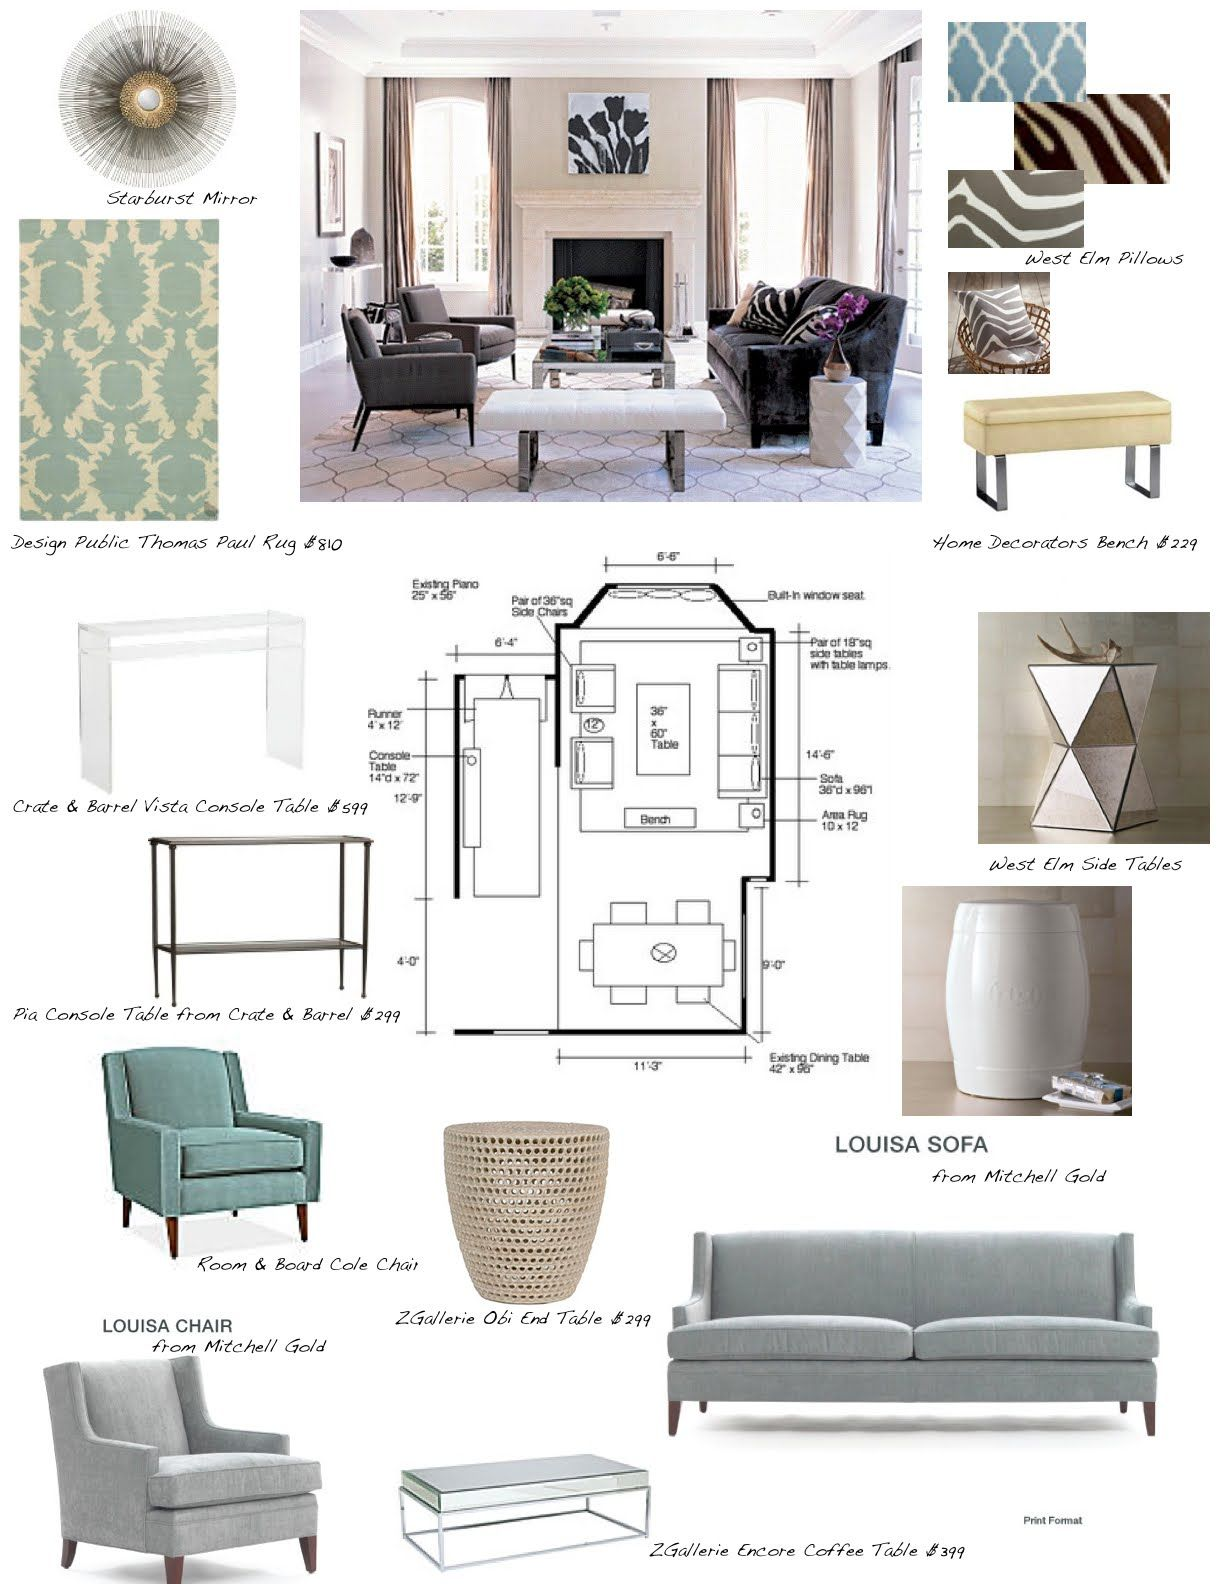 Jill Seidner Interior Design $450 Flat Rate Per Room Interior